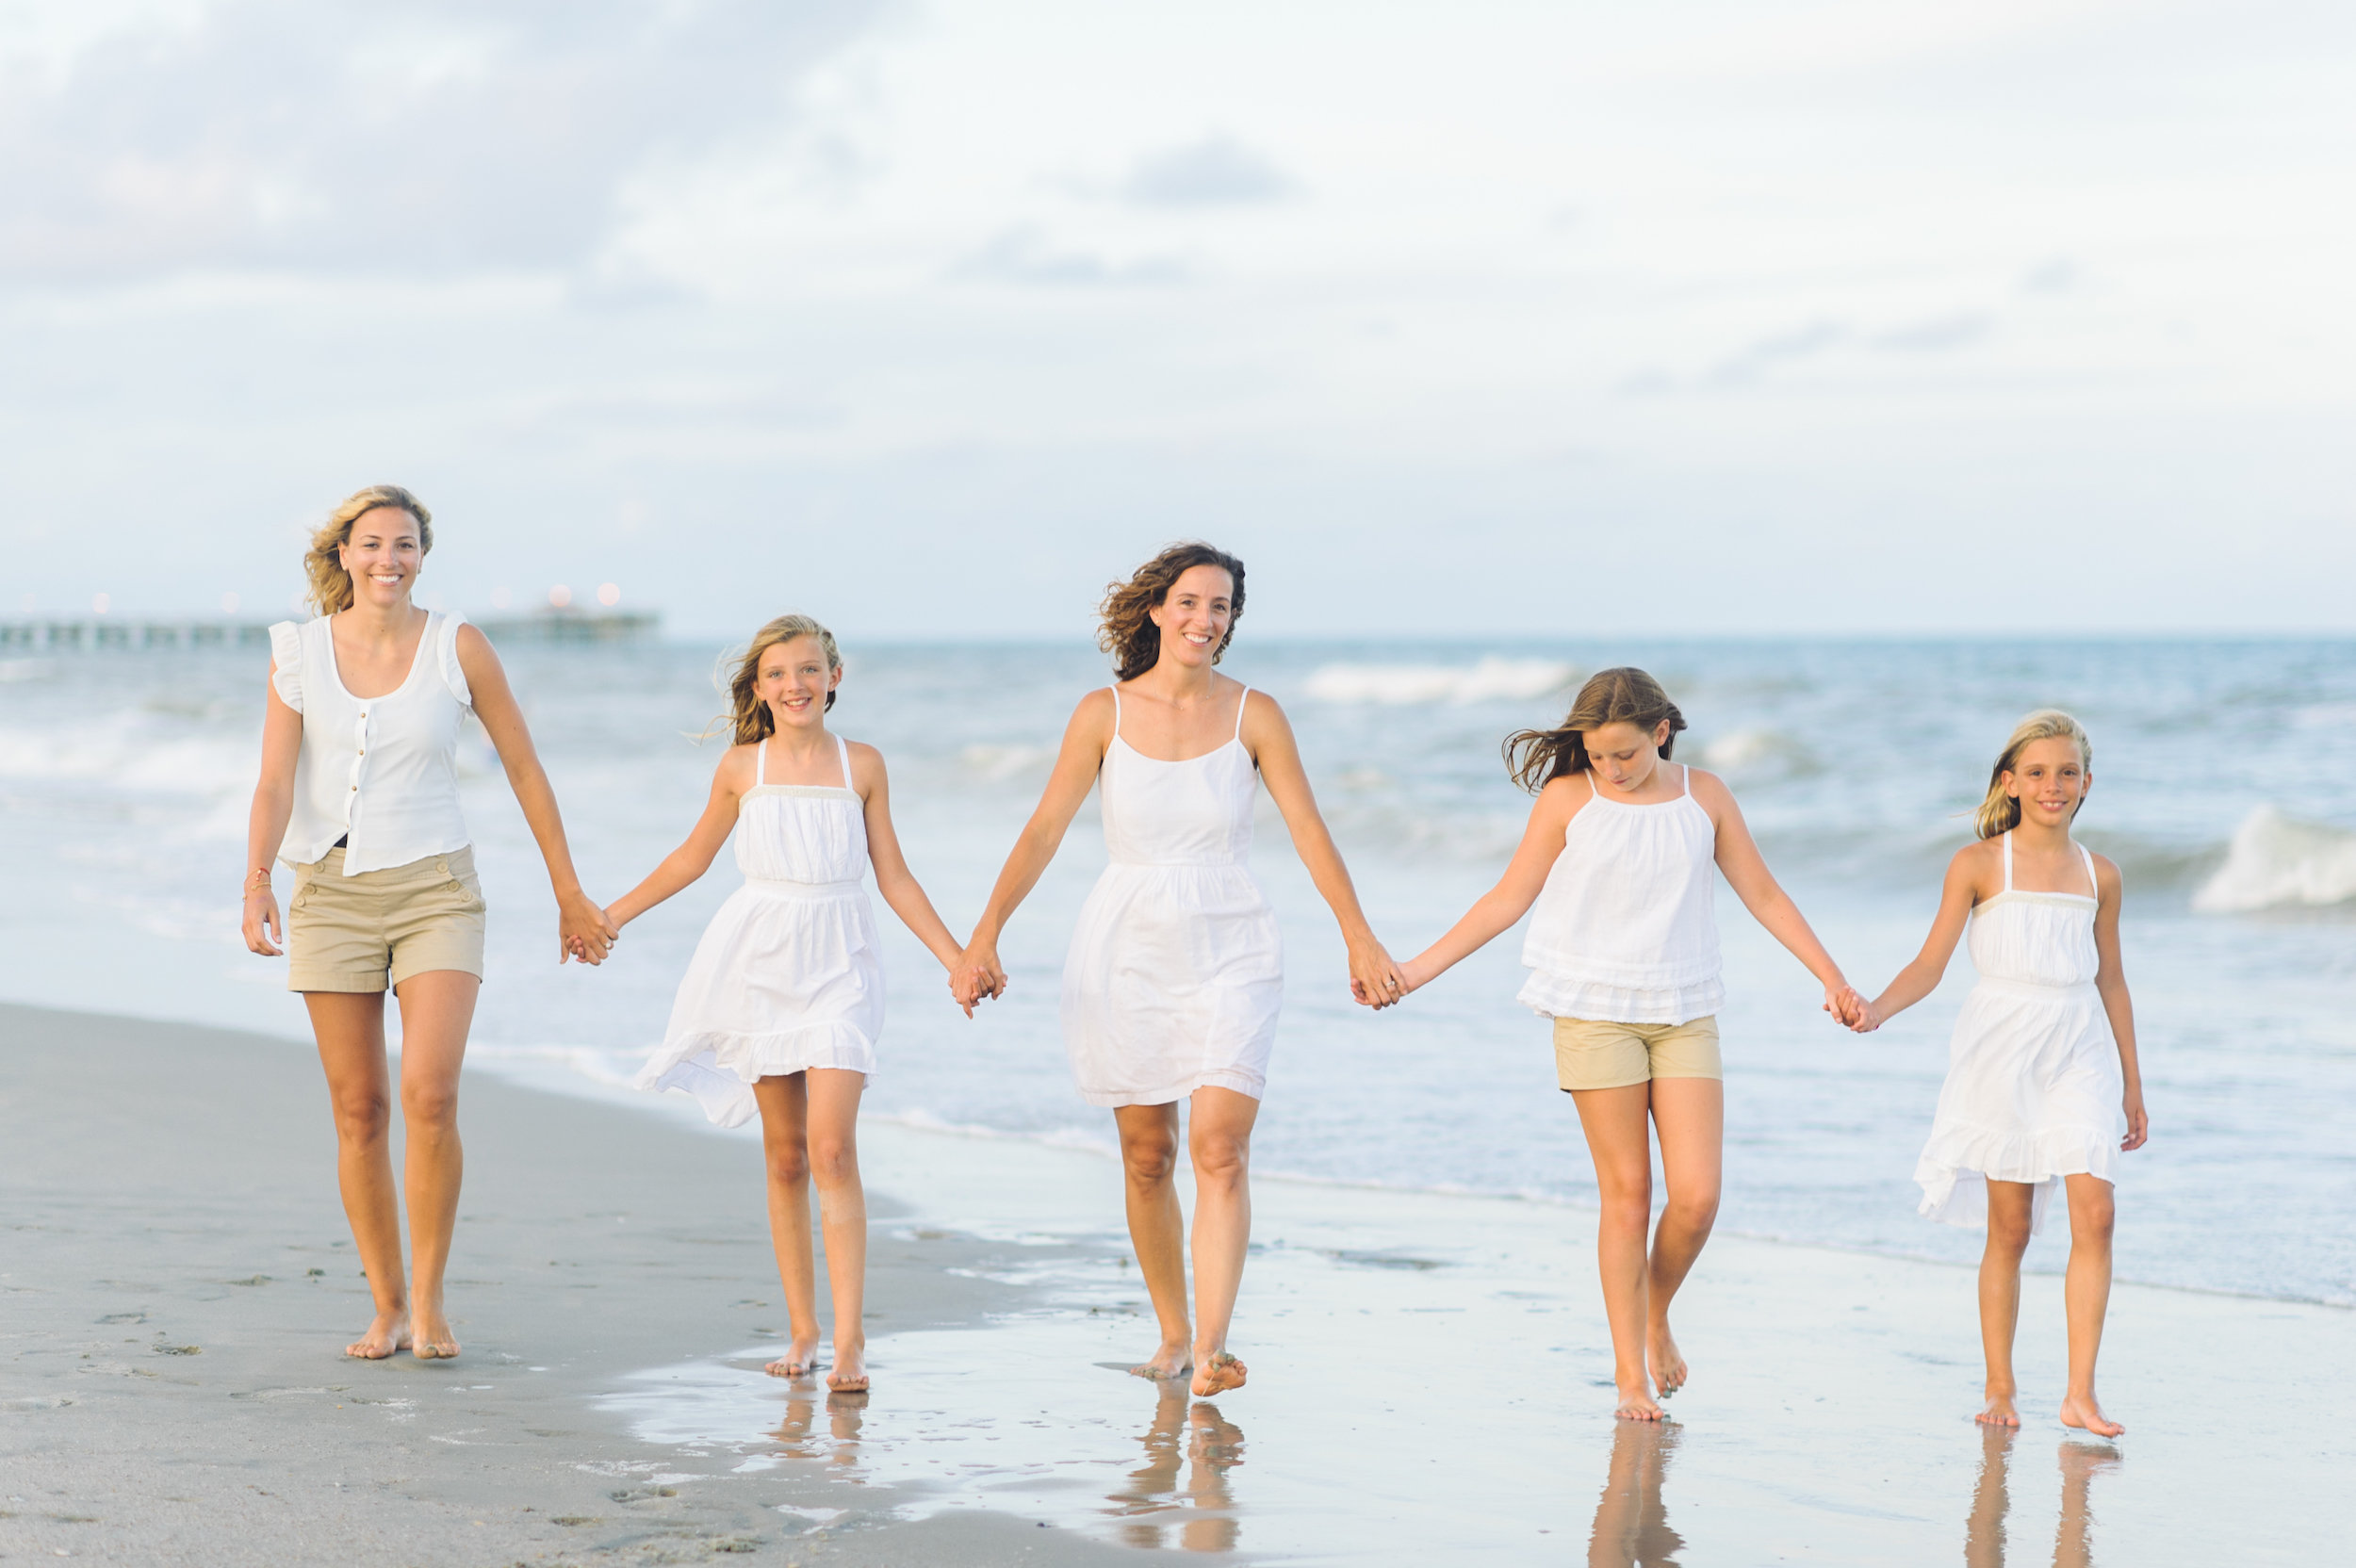 Pawleys Island SC Family Photography - Family Portraits at the Beach in Pawleys Island